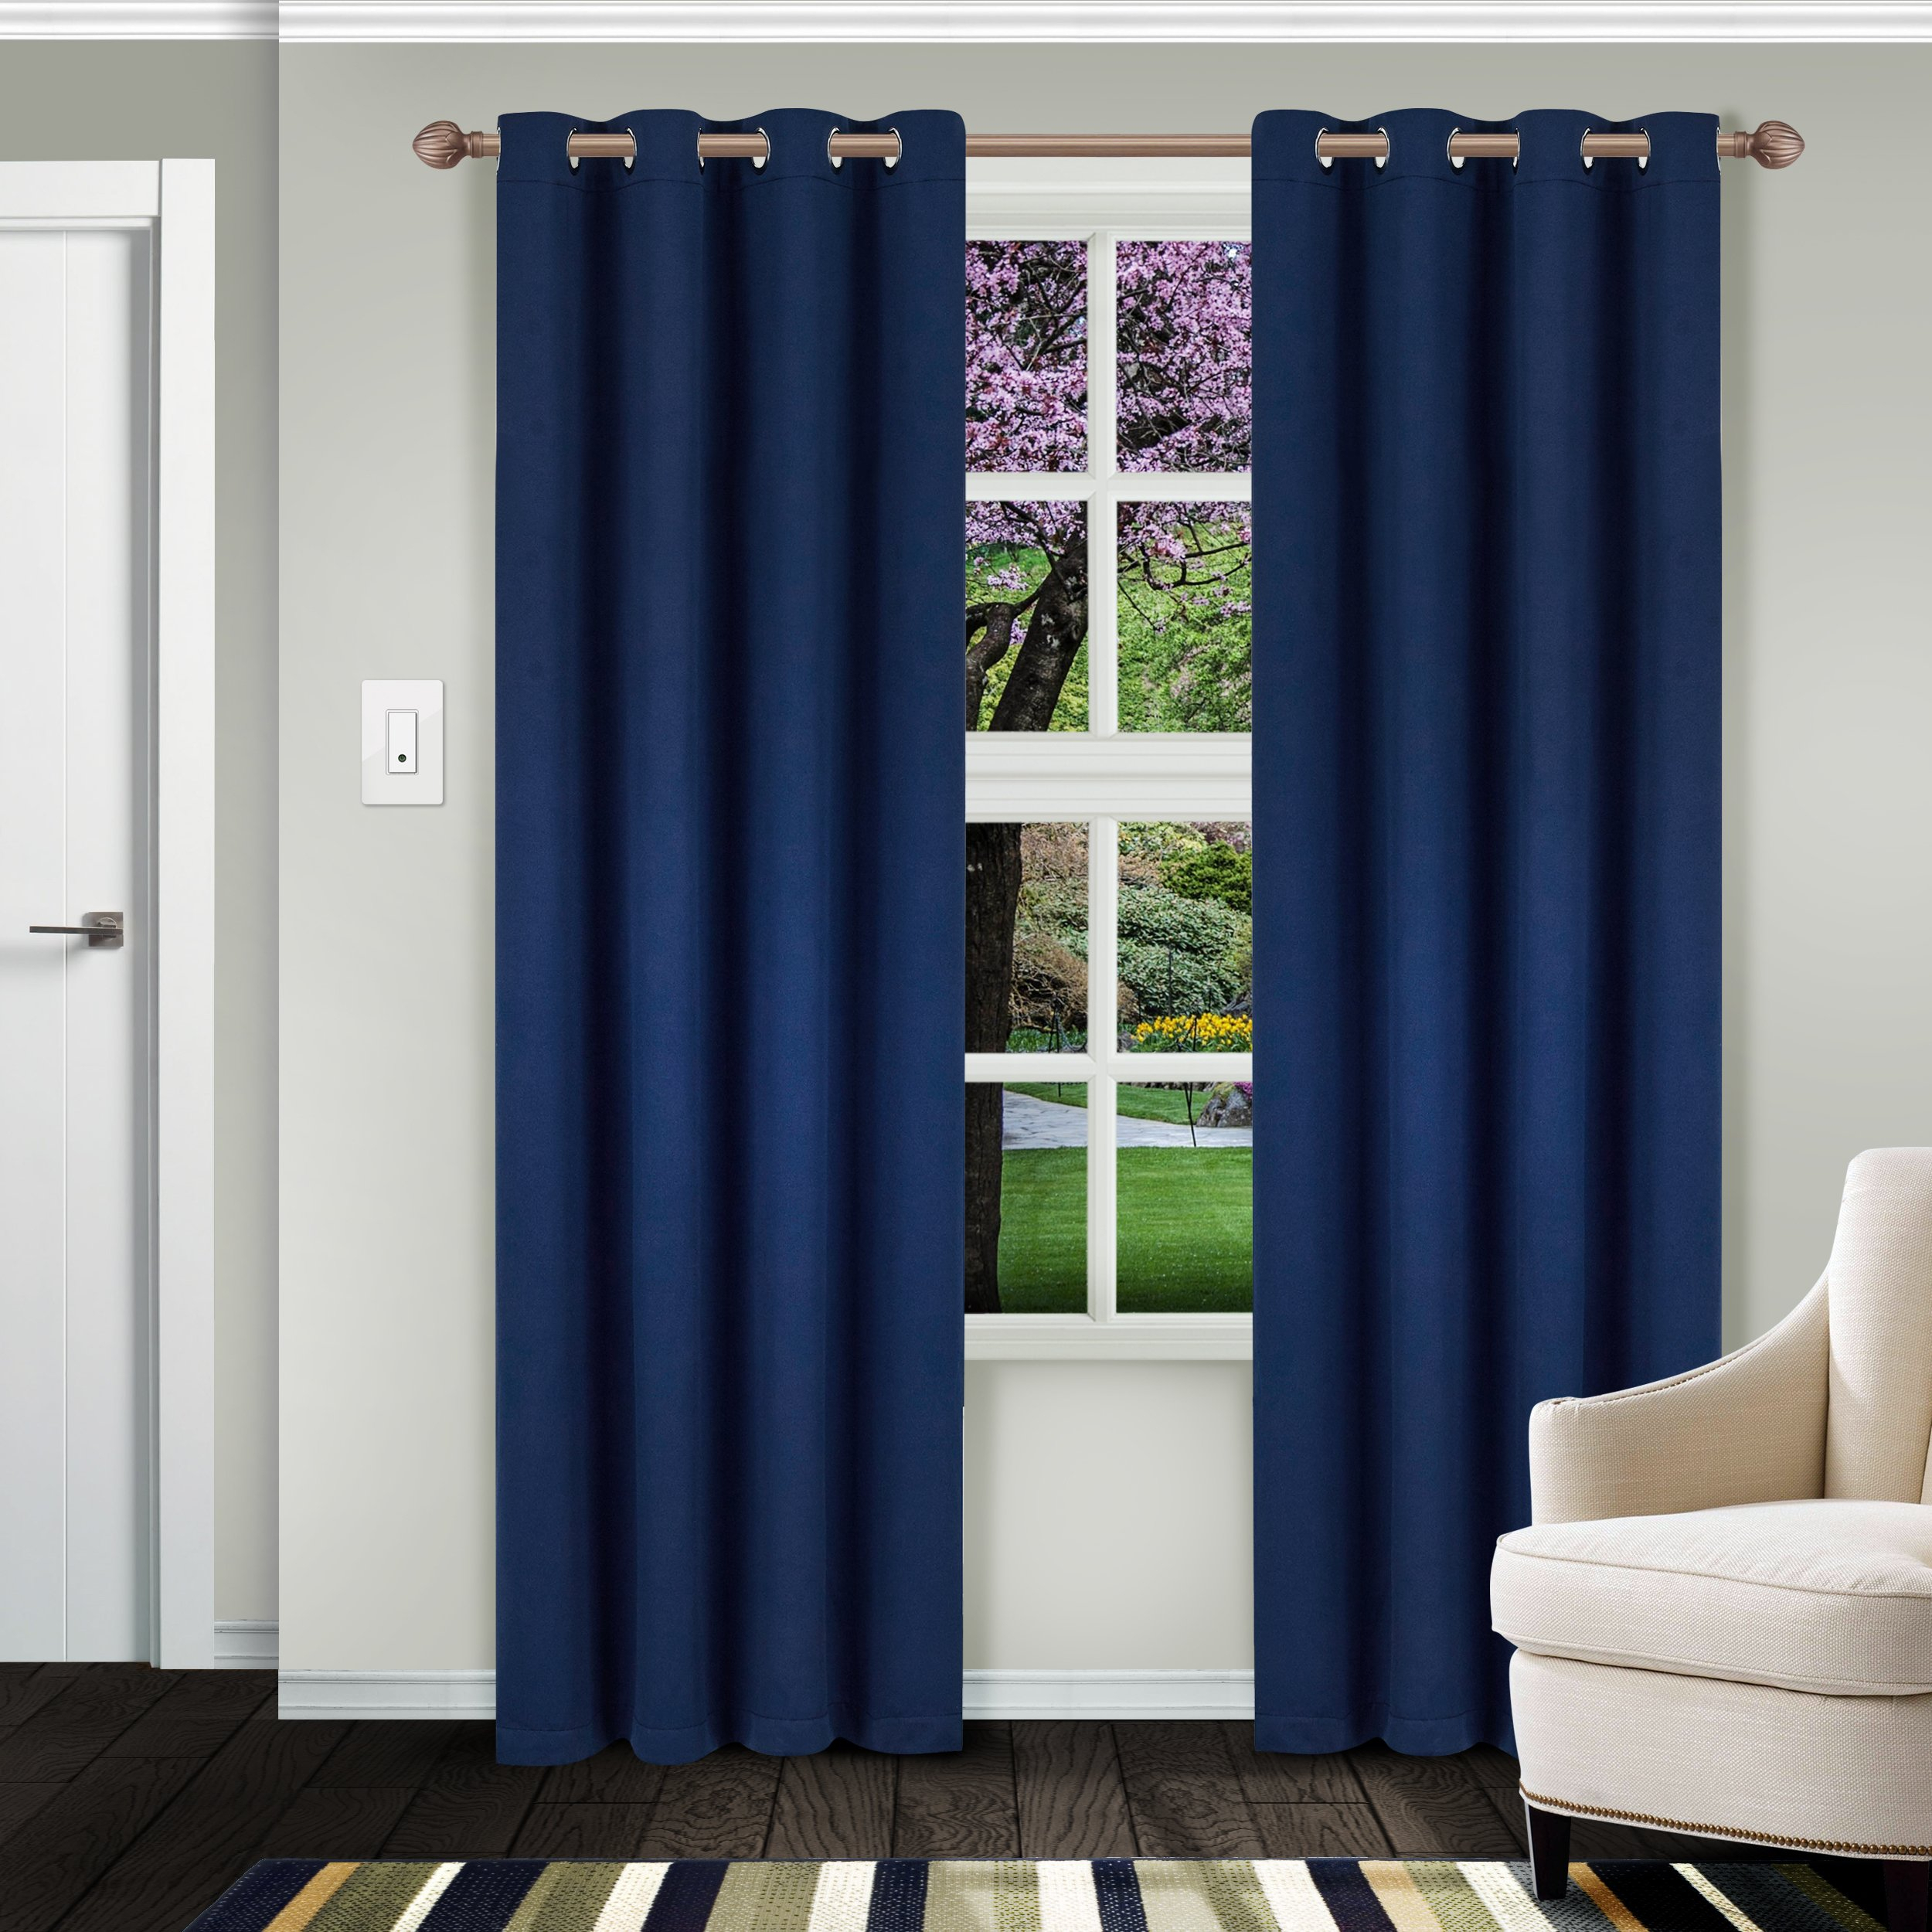 Superior Solid Insulated Thermal Blackout Grommet Curtain With Insulated Thermal Blackout Curtain Panel Pairs (View 19 of 20)